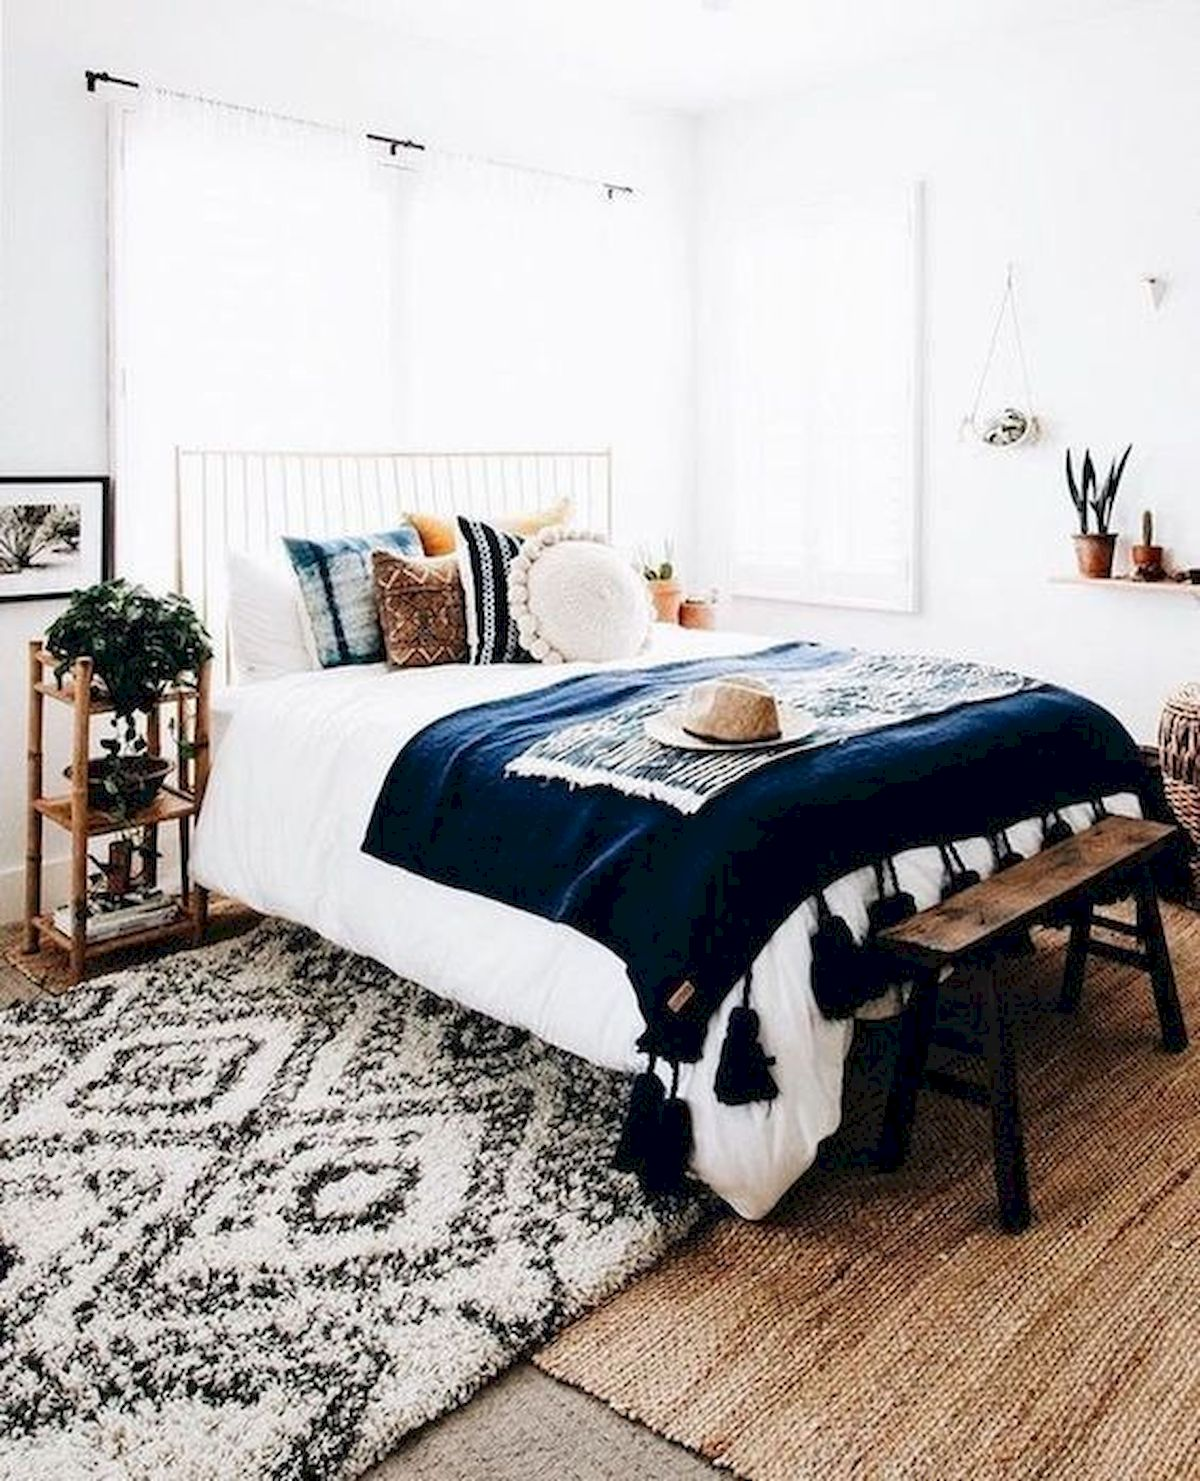 44 Awesome White Master Bedroom Design and Decor Ideas For Any Home Design (12)